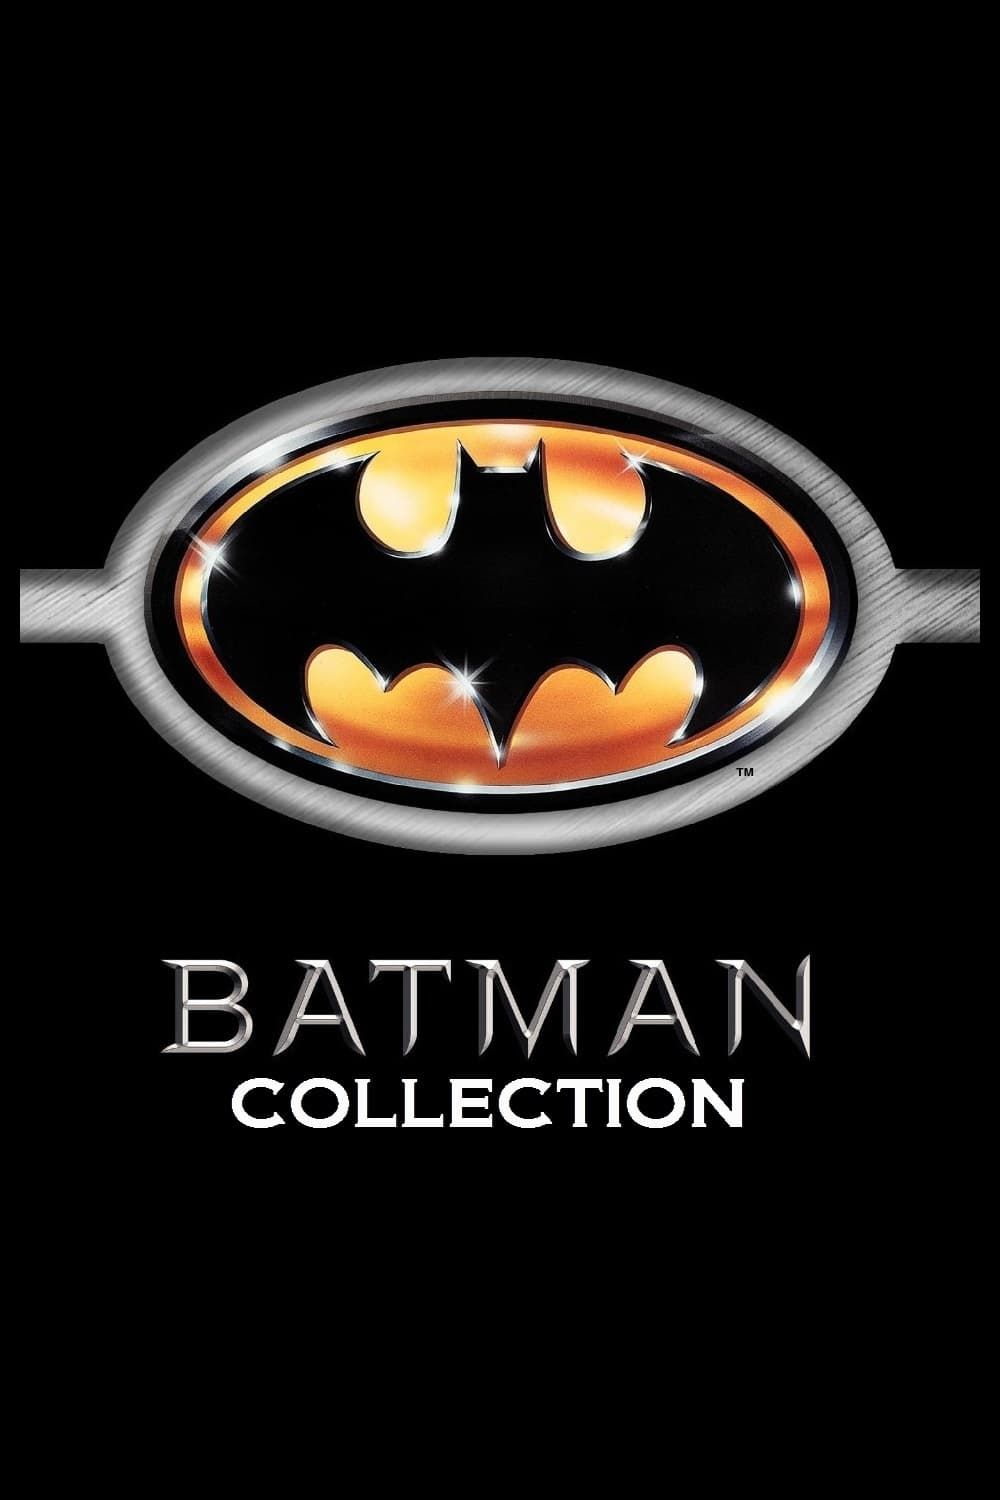 all movies from batman collection saga are on movies film